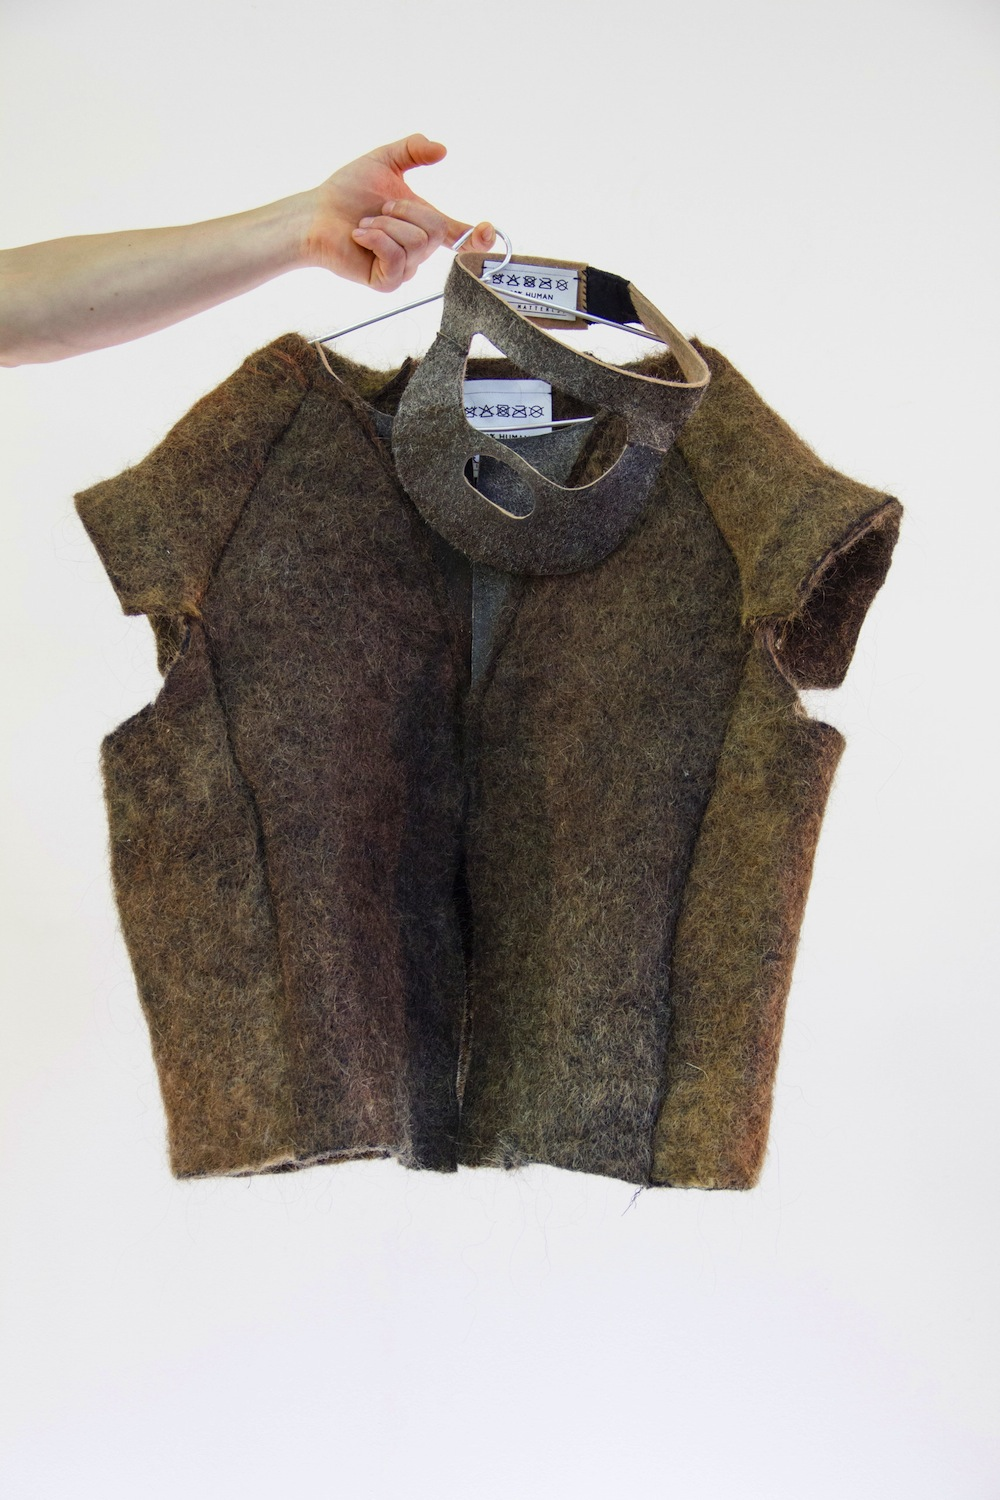 Eindhoven Graduate Designs Clothes Made Out Of Human Hair